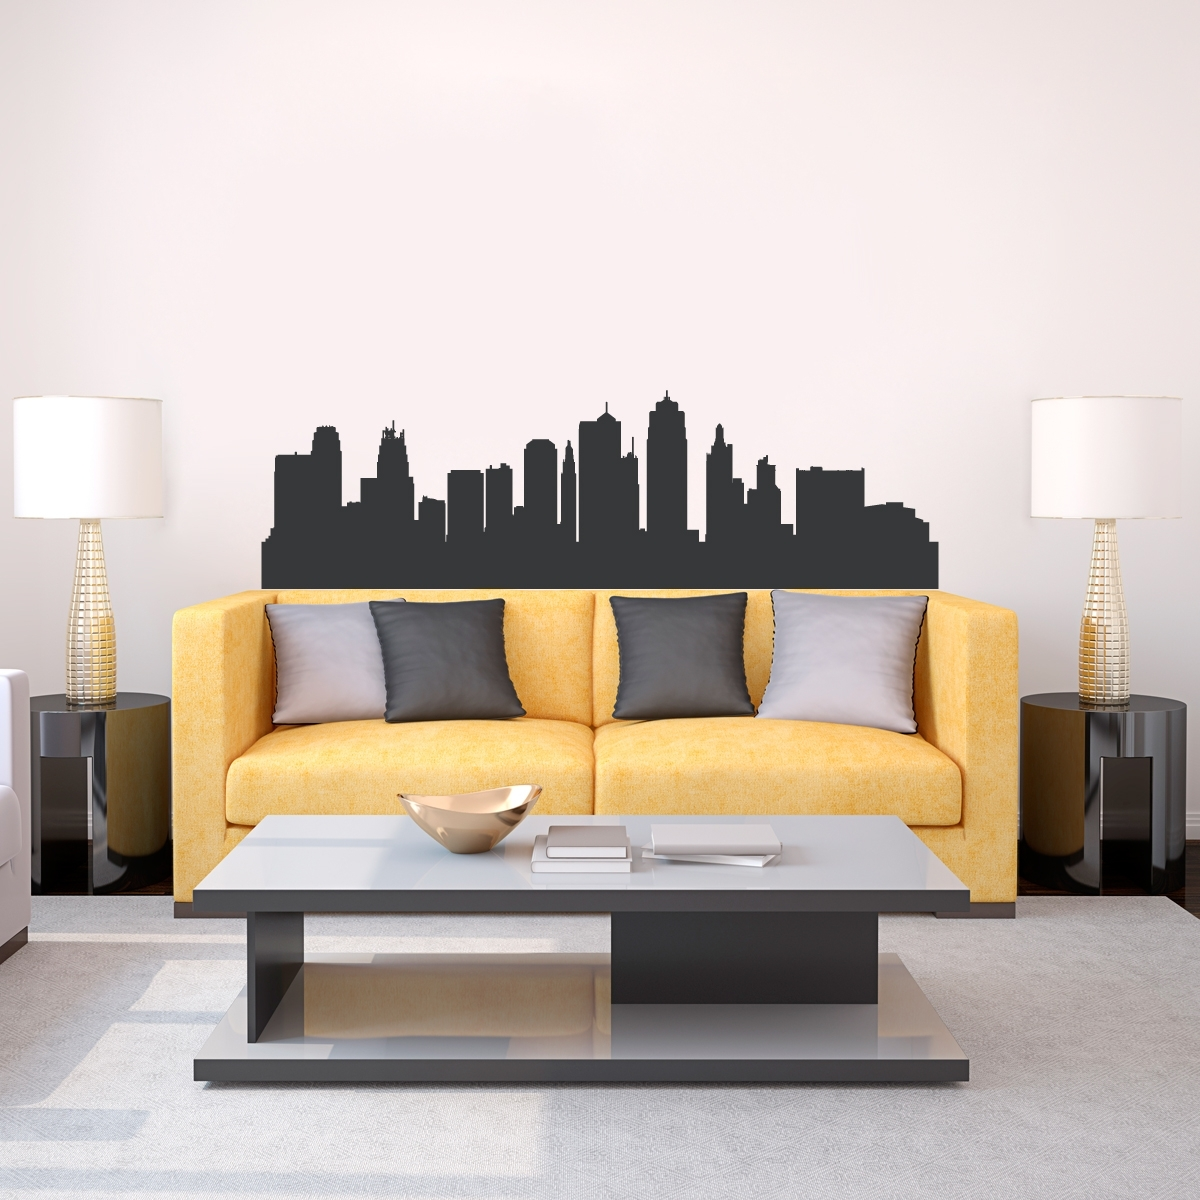 Kansas City Missouri Skyline Vinyl Wall Decal Sticker Intended For Newest Kansas City Wall Art (View 2 of 20)